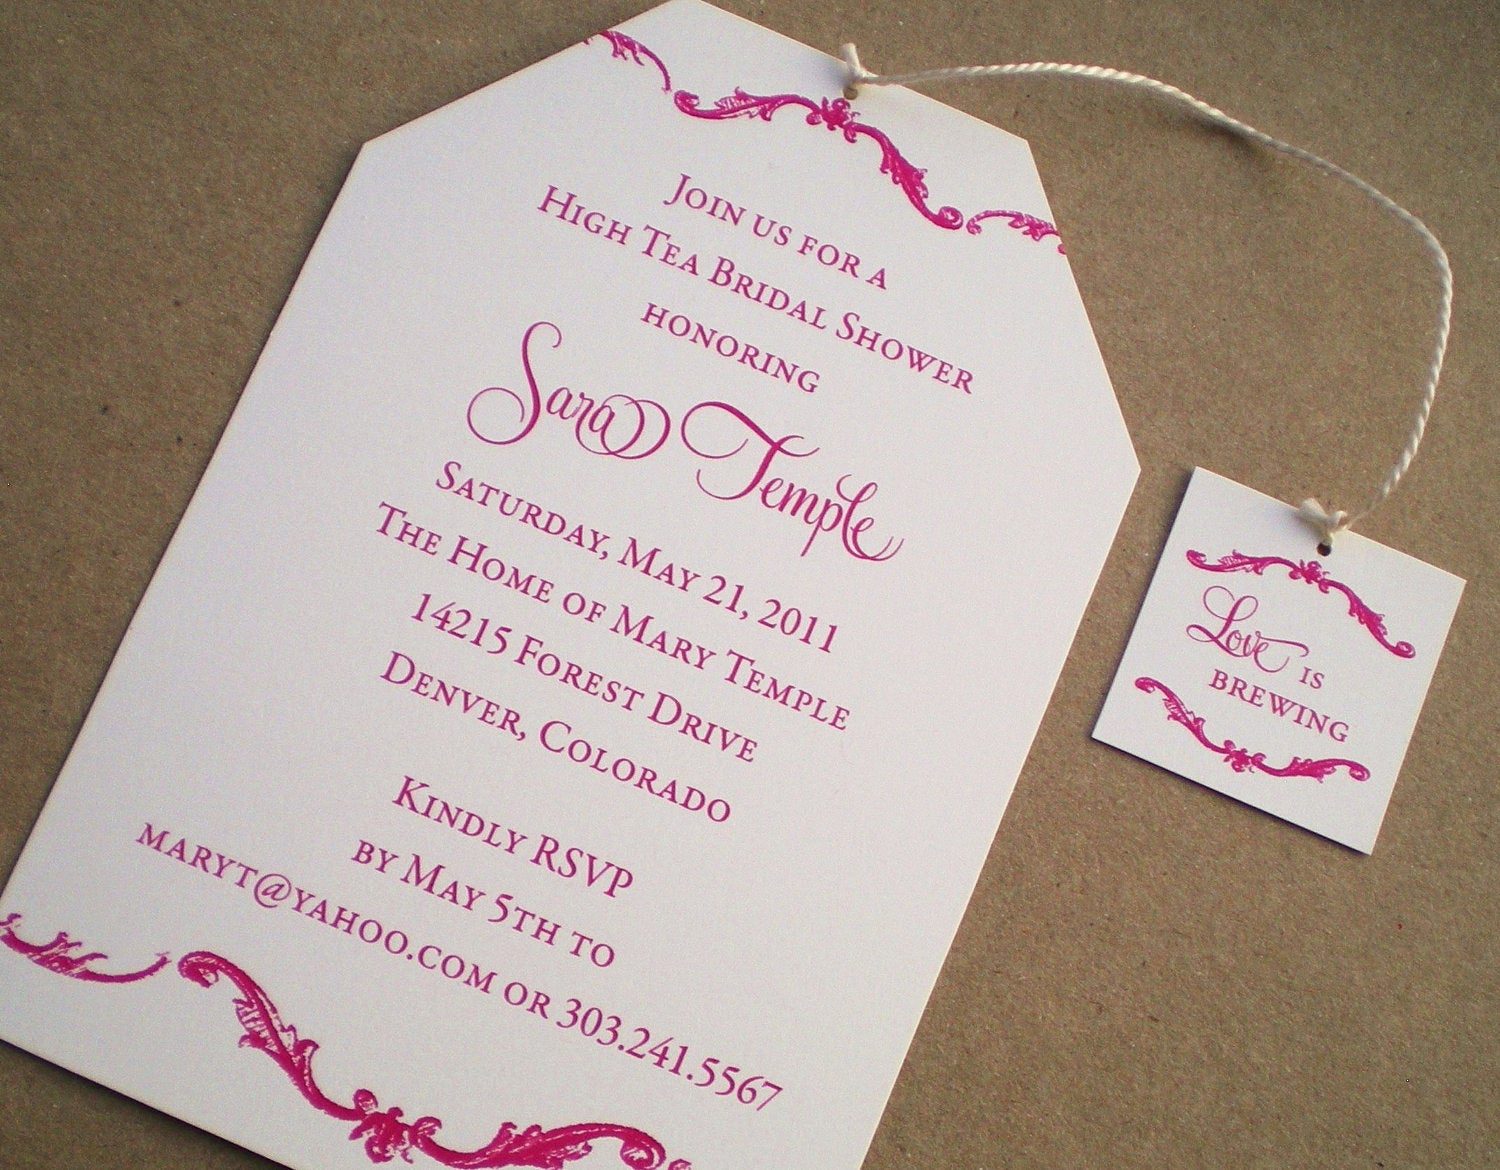 Wedding Shower Invitation Templates Inspirational High Tea Bridal Shower Invitations by Ideachic On Etsy